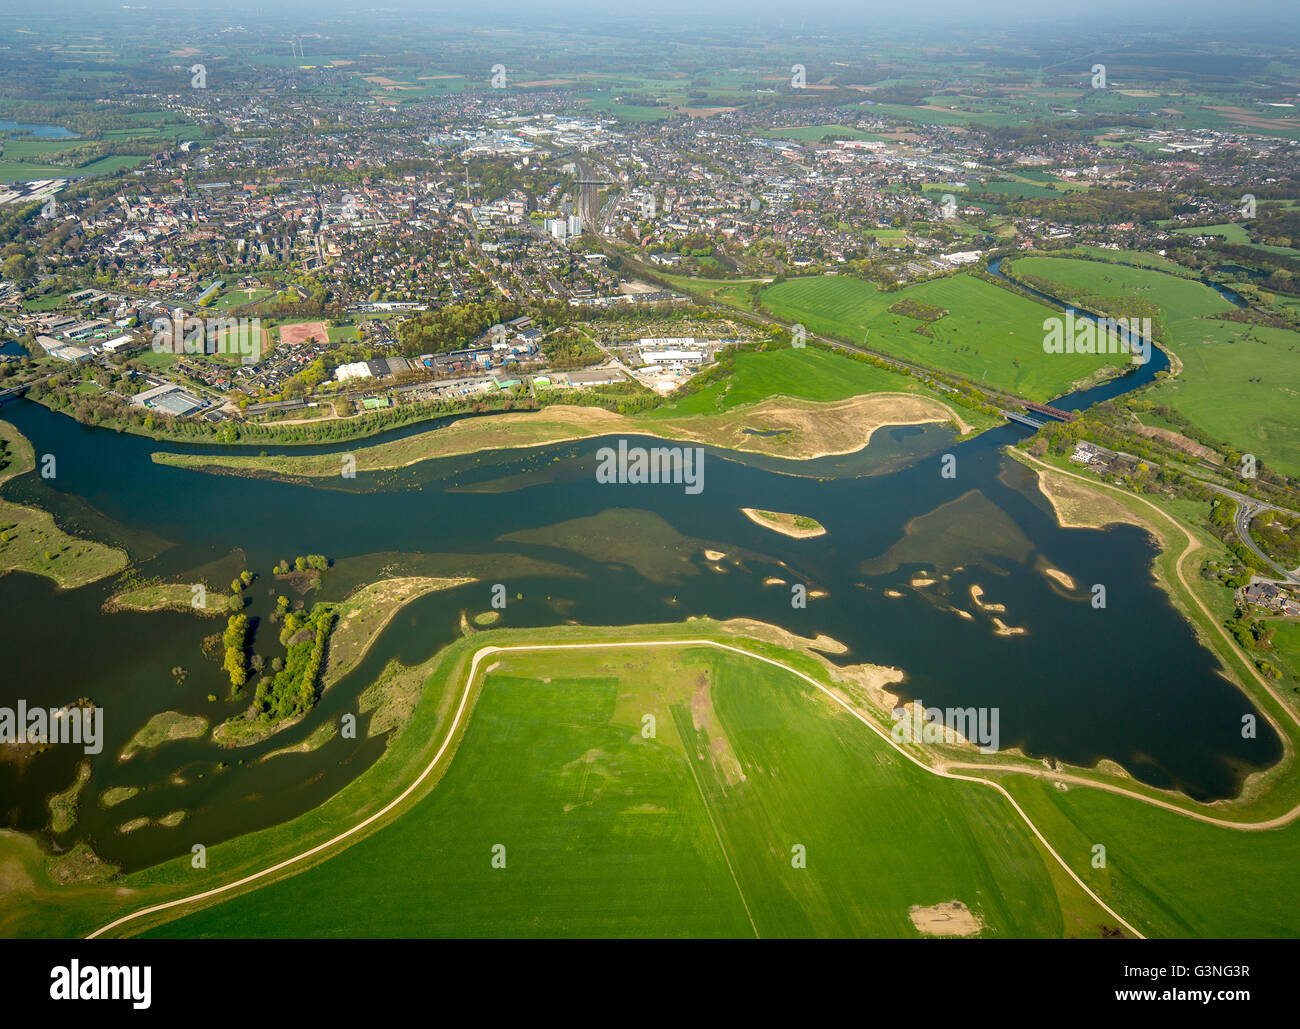 Aerial view, Lippe joins the Rhine, reconstruction, conservation, flood plains, Lippeverband, Wesel, Ruhr Area, Stock Photo